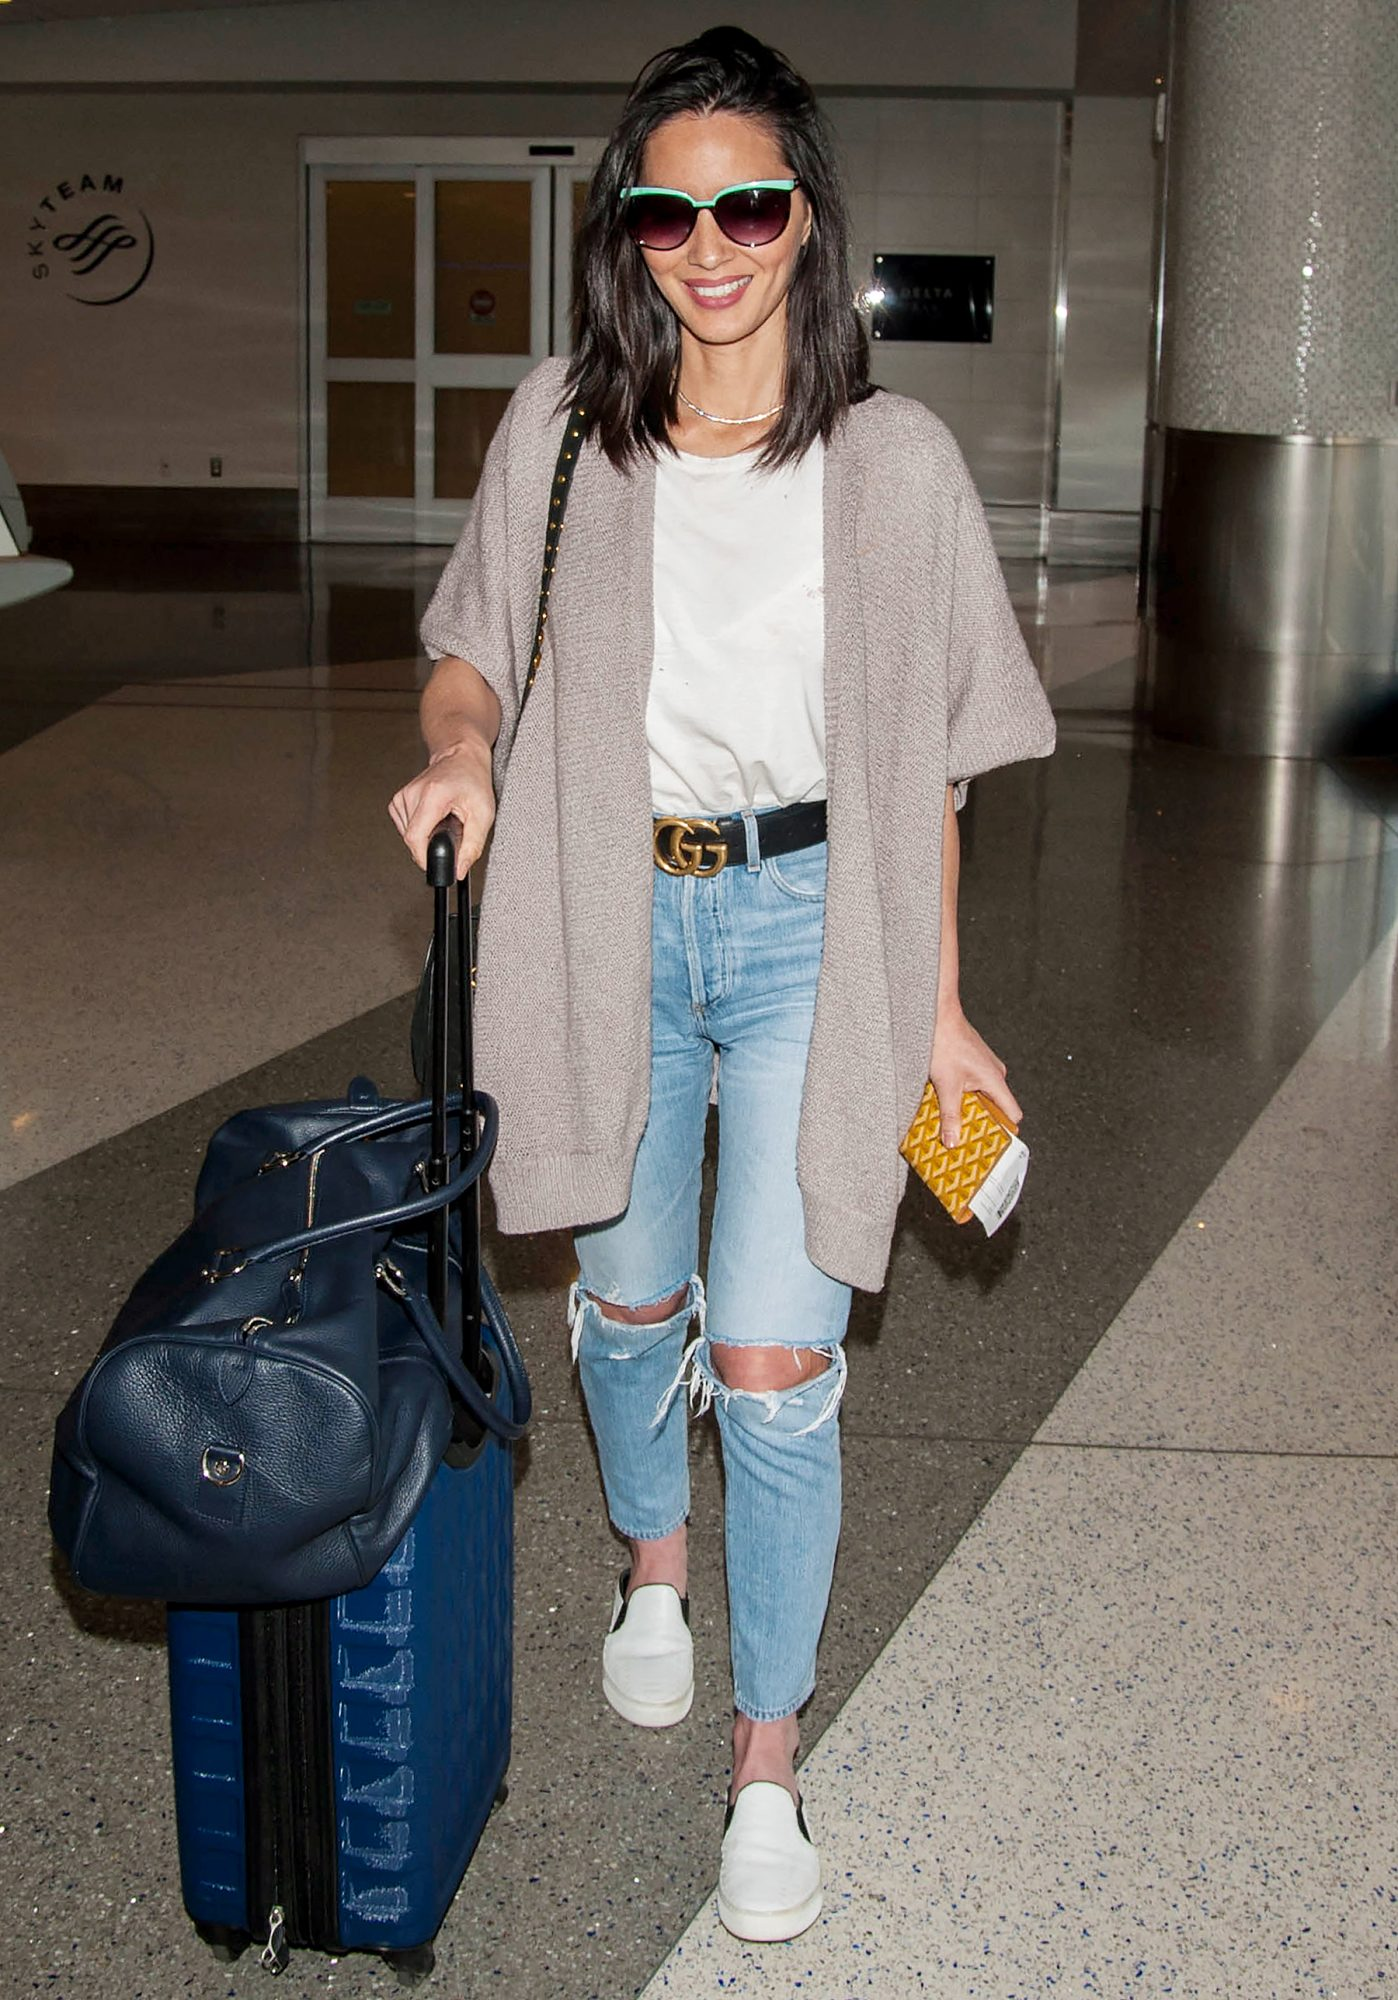 Olivia Munn is all smiles at LAX airport in Los Angeles post breakup with NFL quarterback Aaron Rodgers